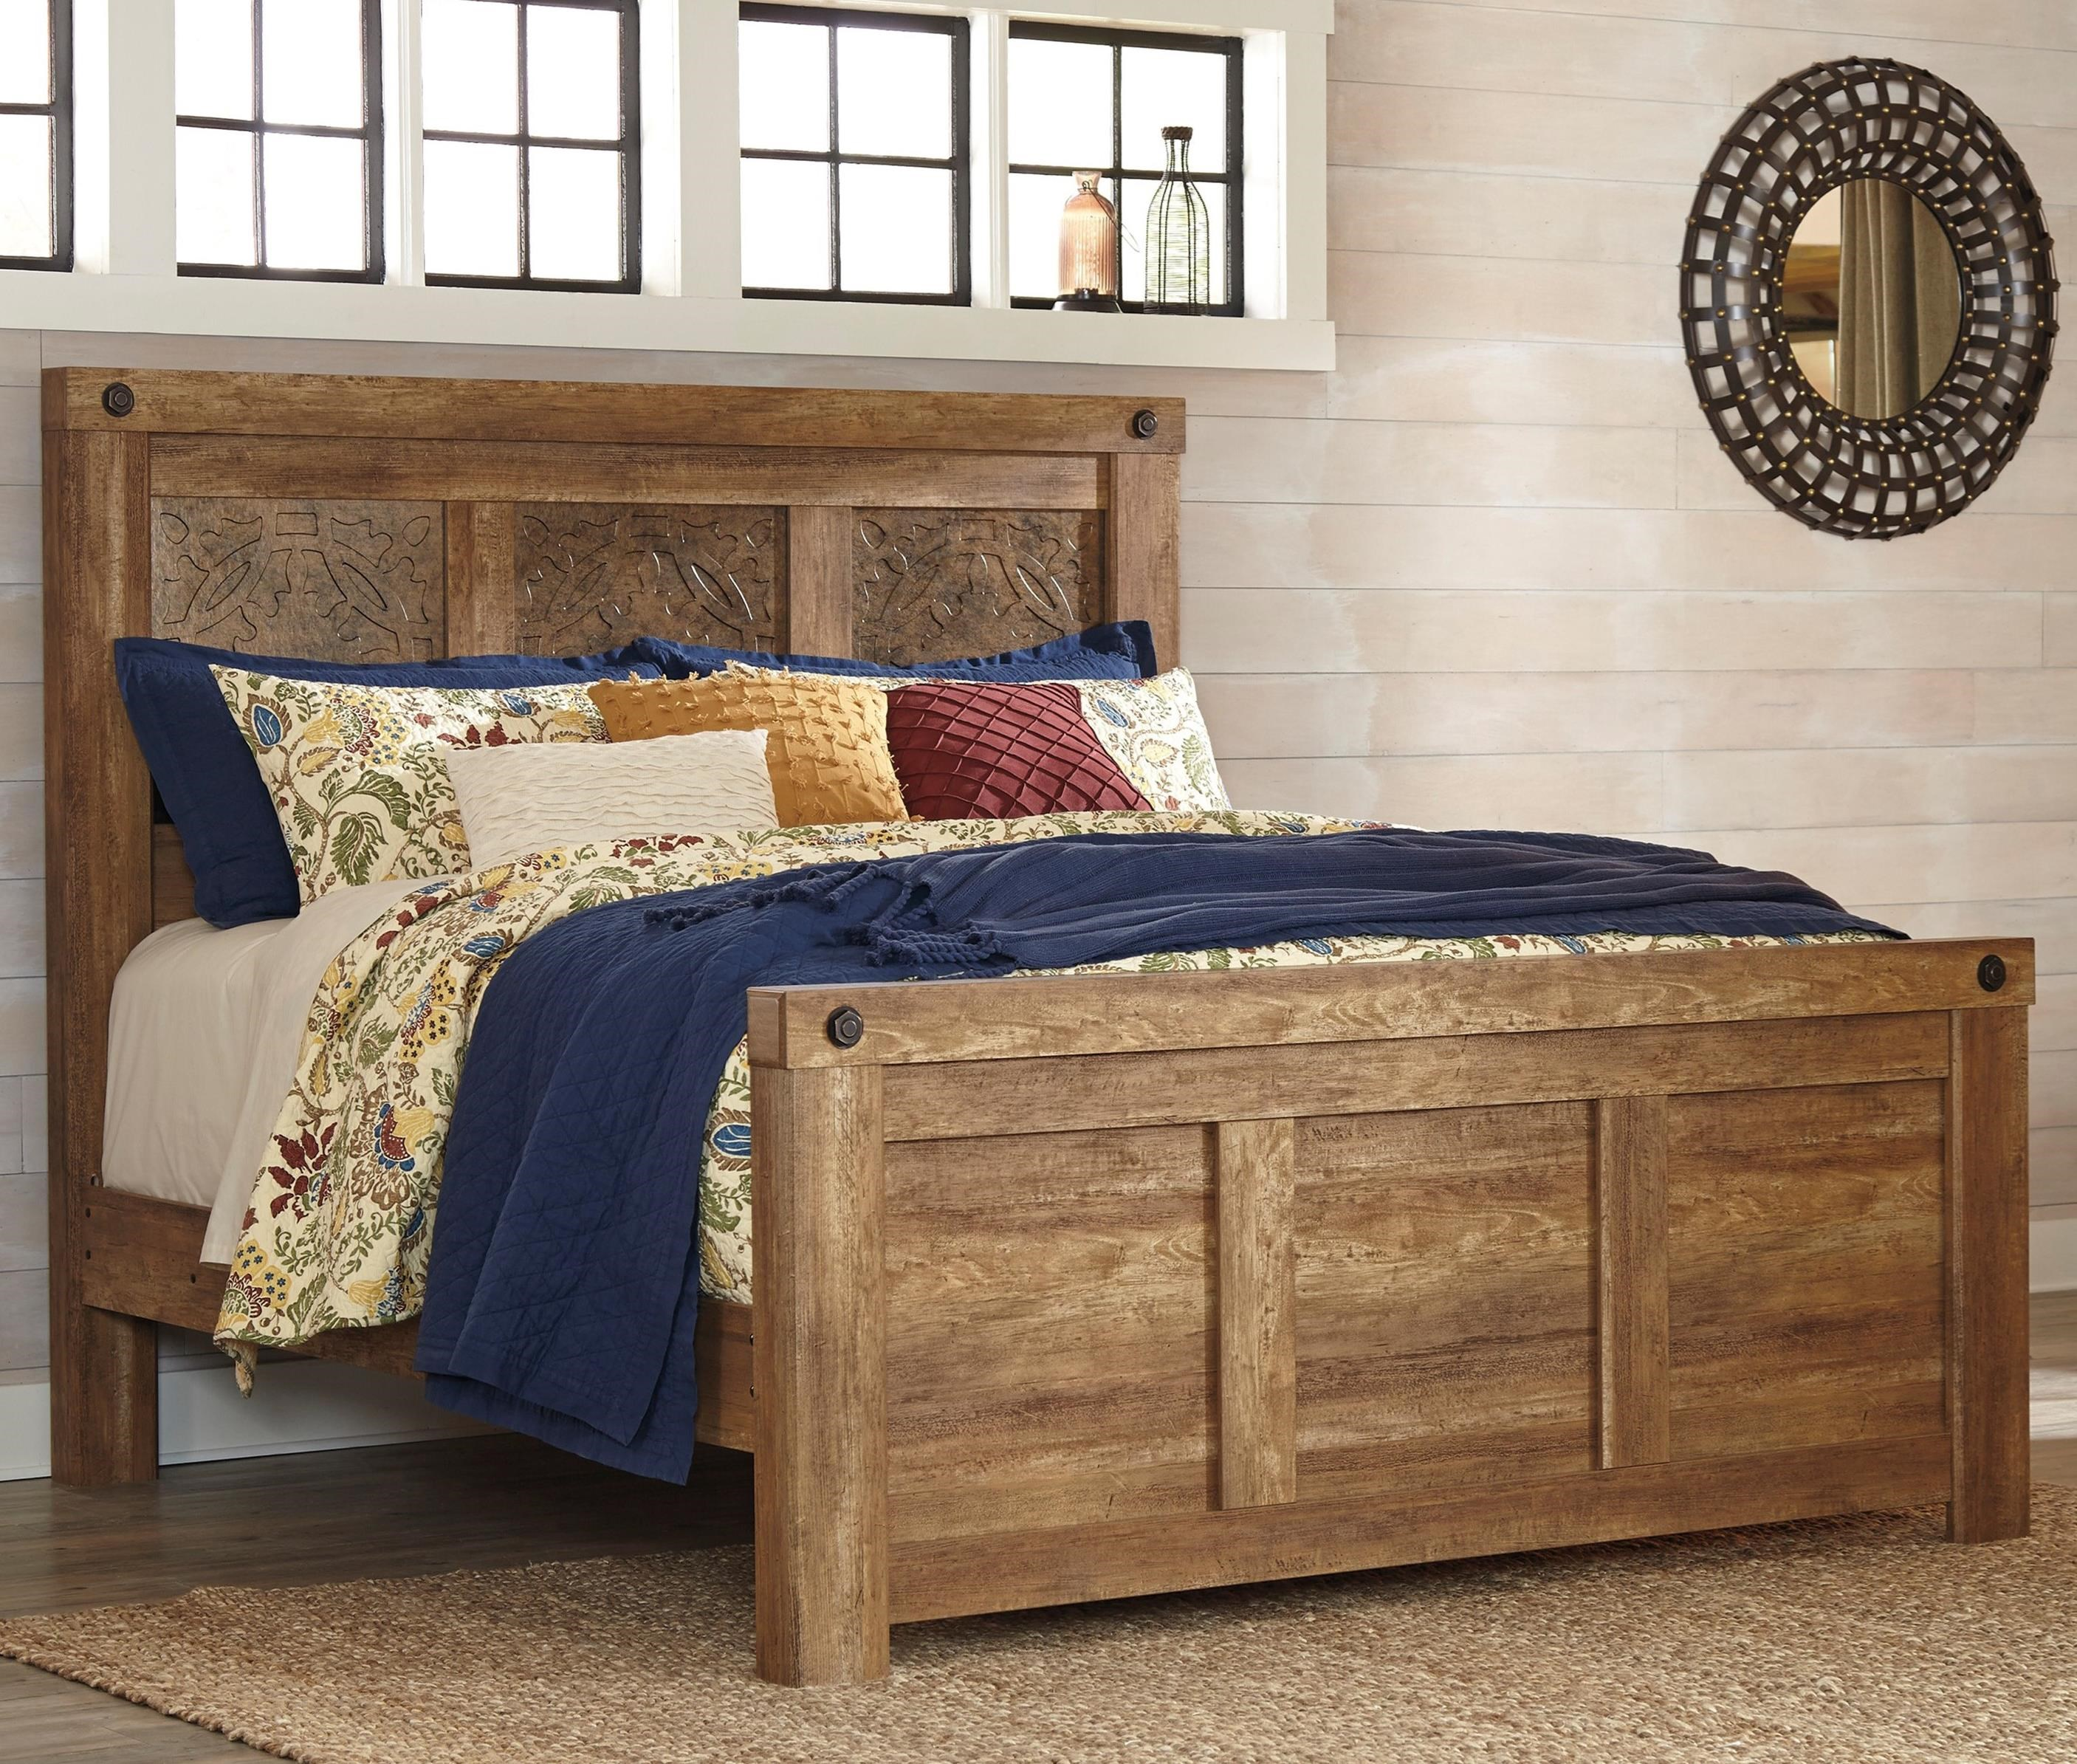 Signature Design by Ashley Ladimier King Mansion Bed - Item Number: B399-58+56+99